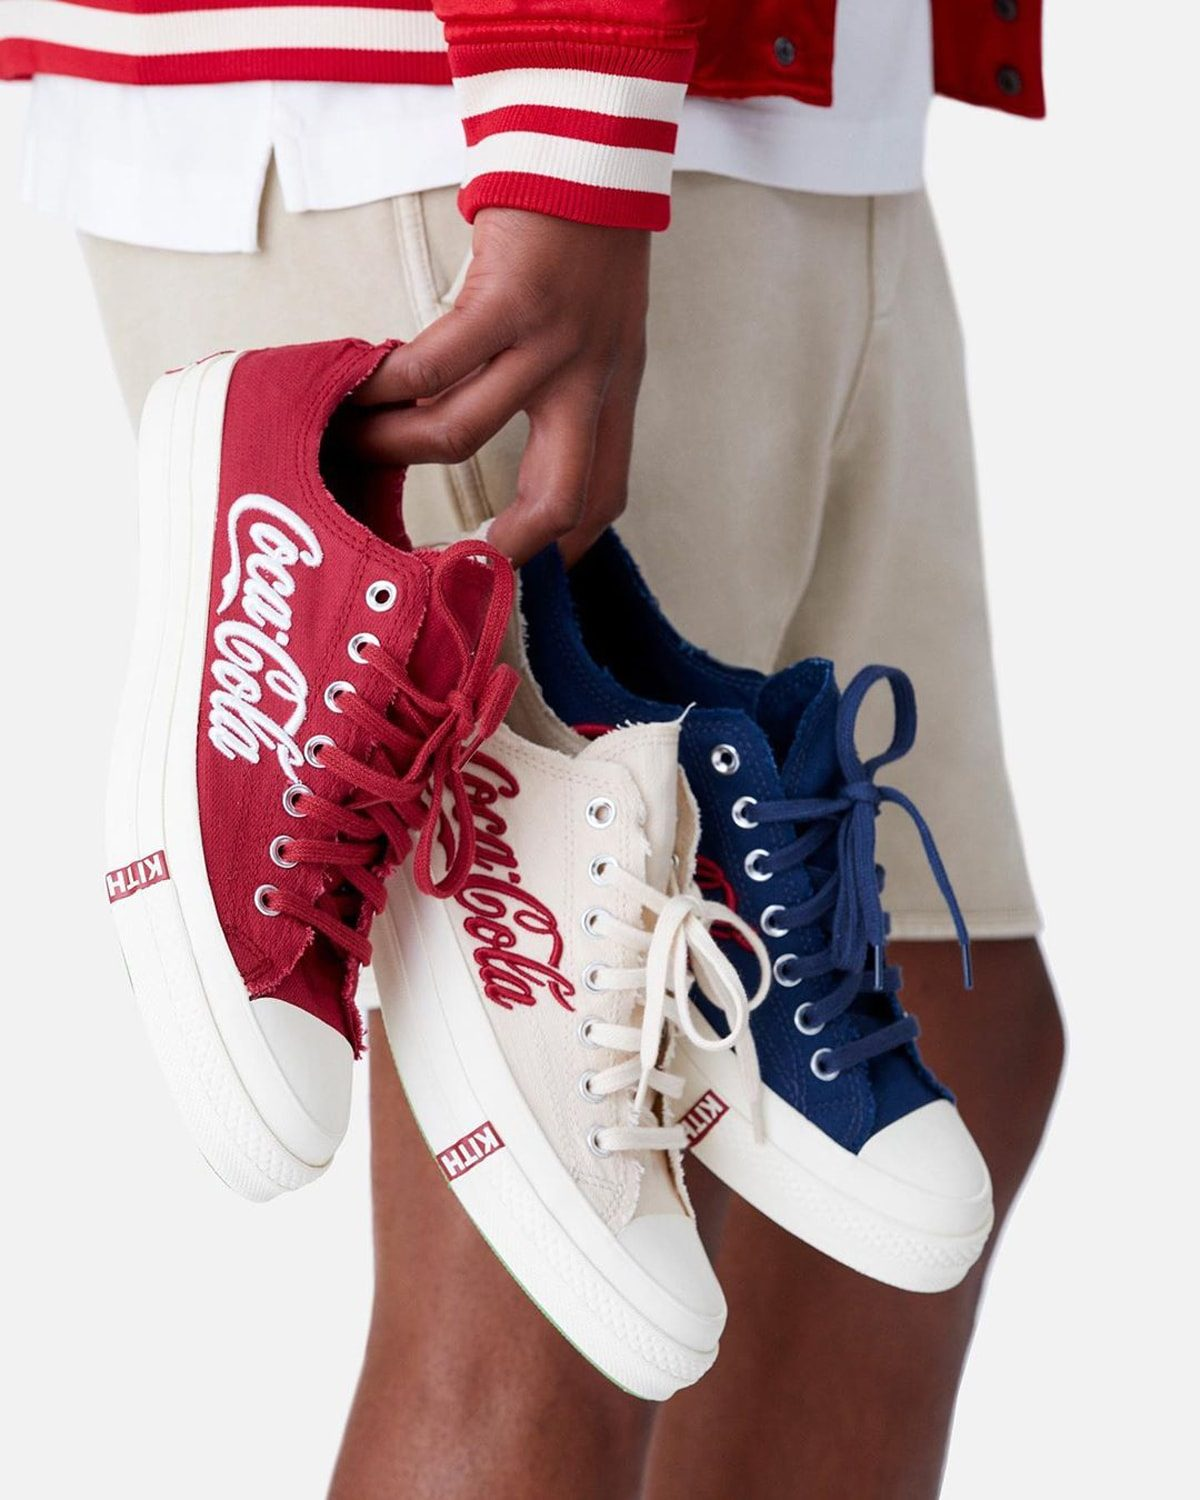 KITH and Coca-Cola Release Their Trio of Low-Top Chuck 70s on August 15th